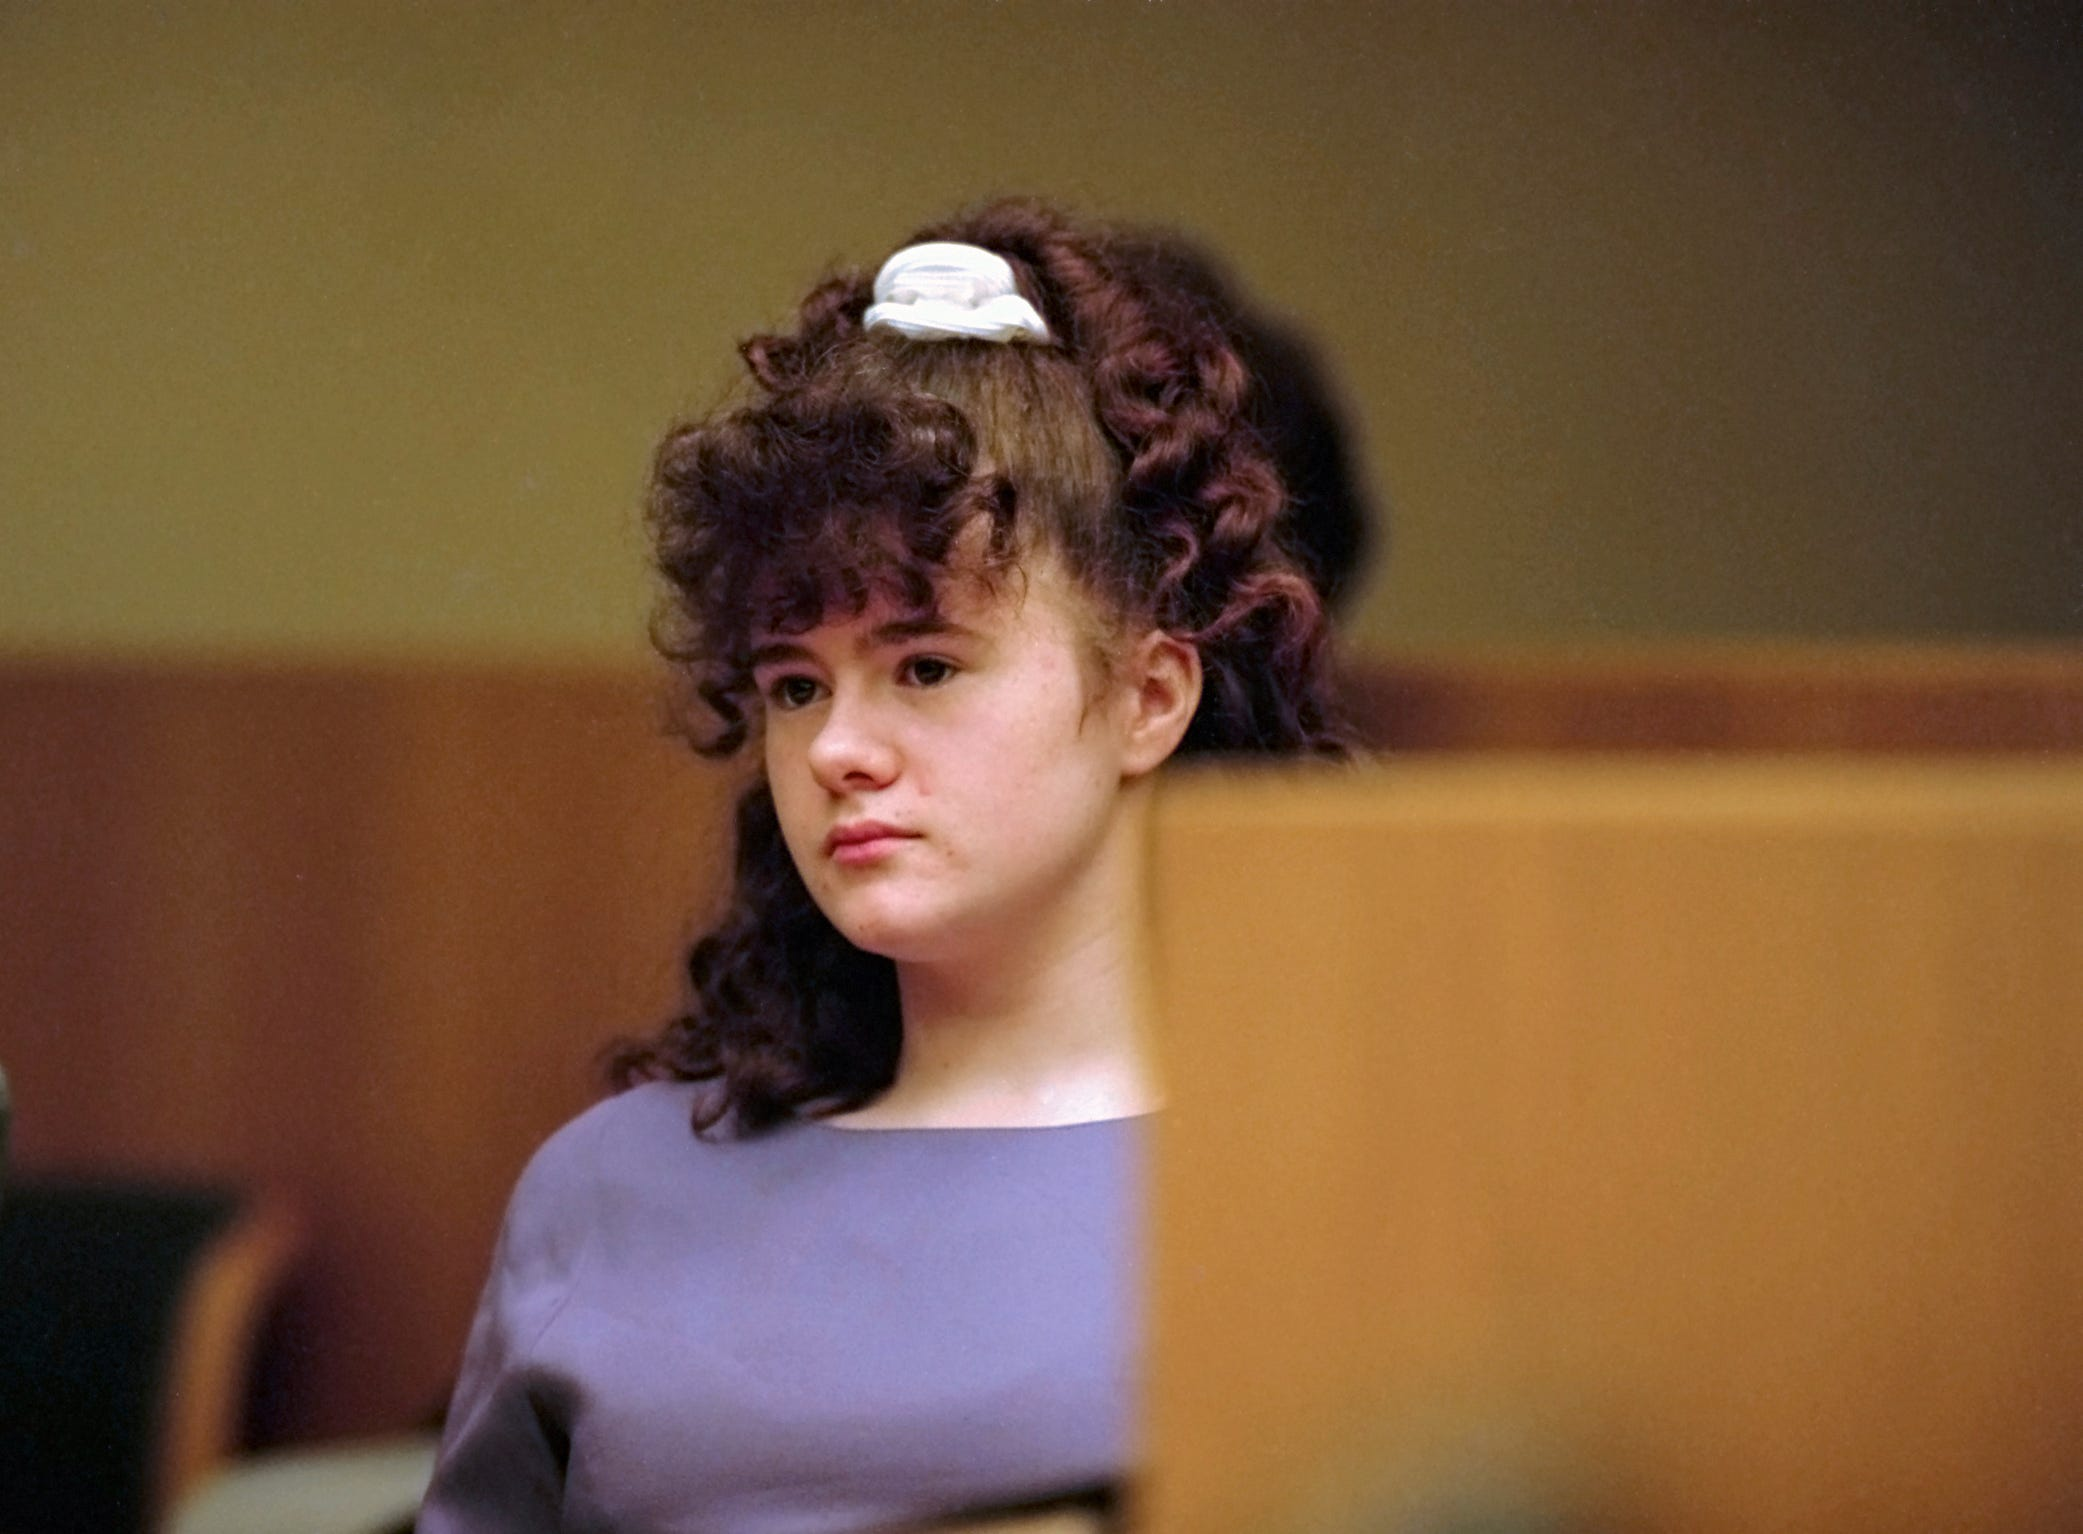 Christa Gail Pike in court for a motion hearing Tuesday, Jan. 23. 1996.